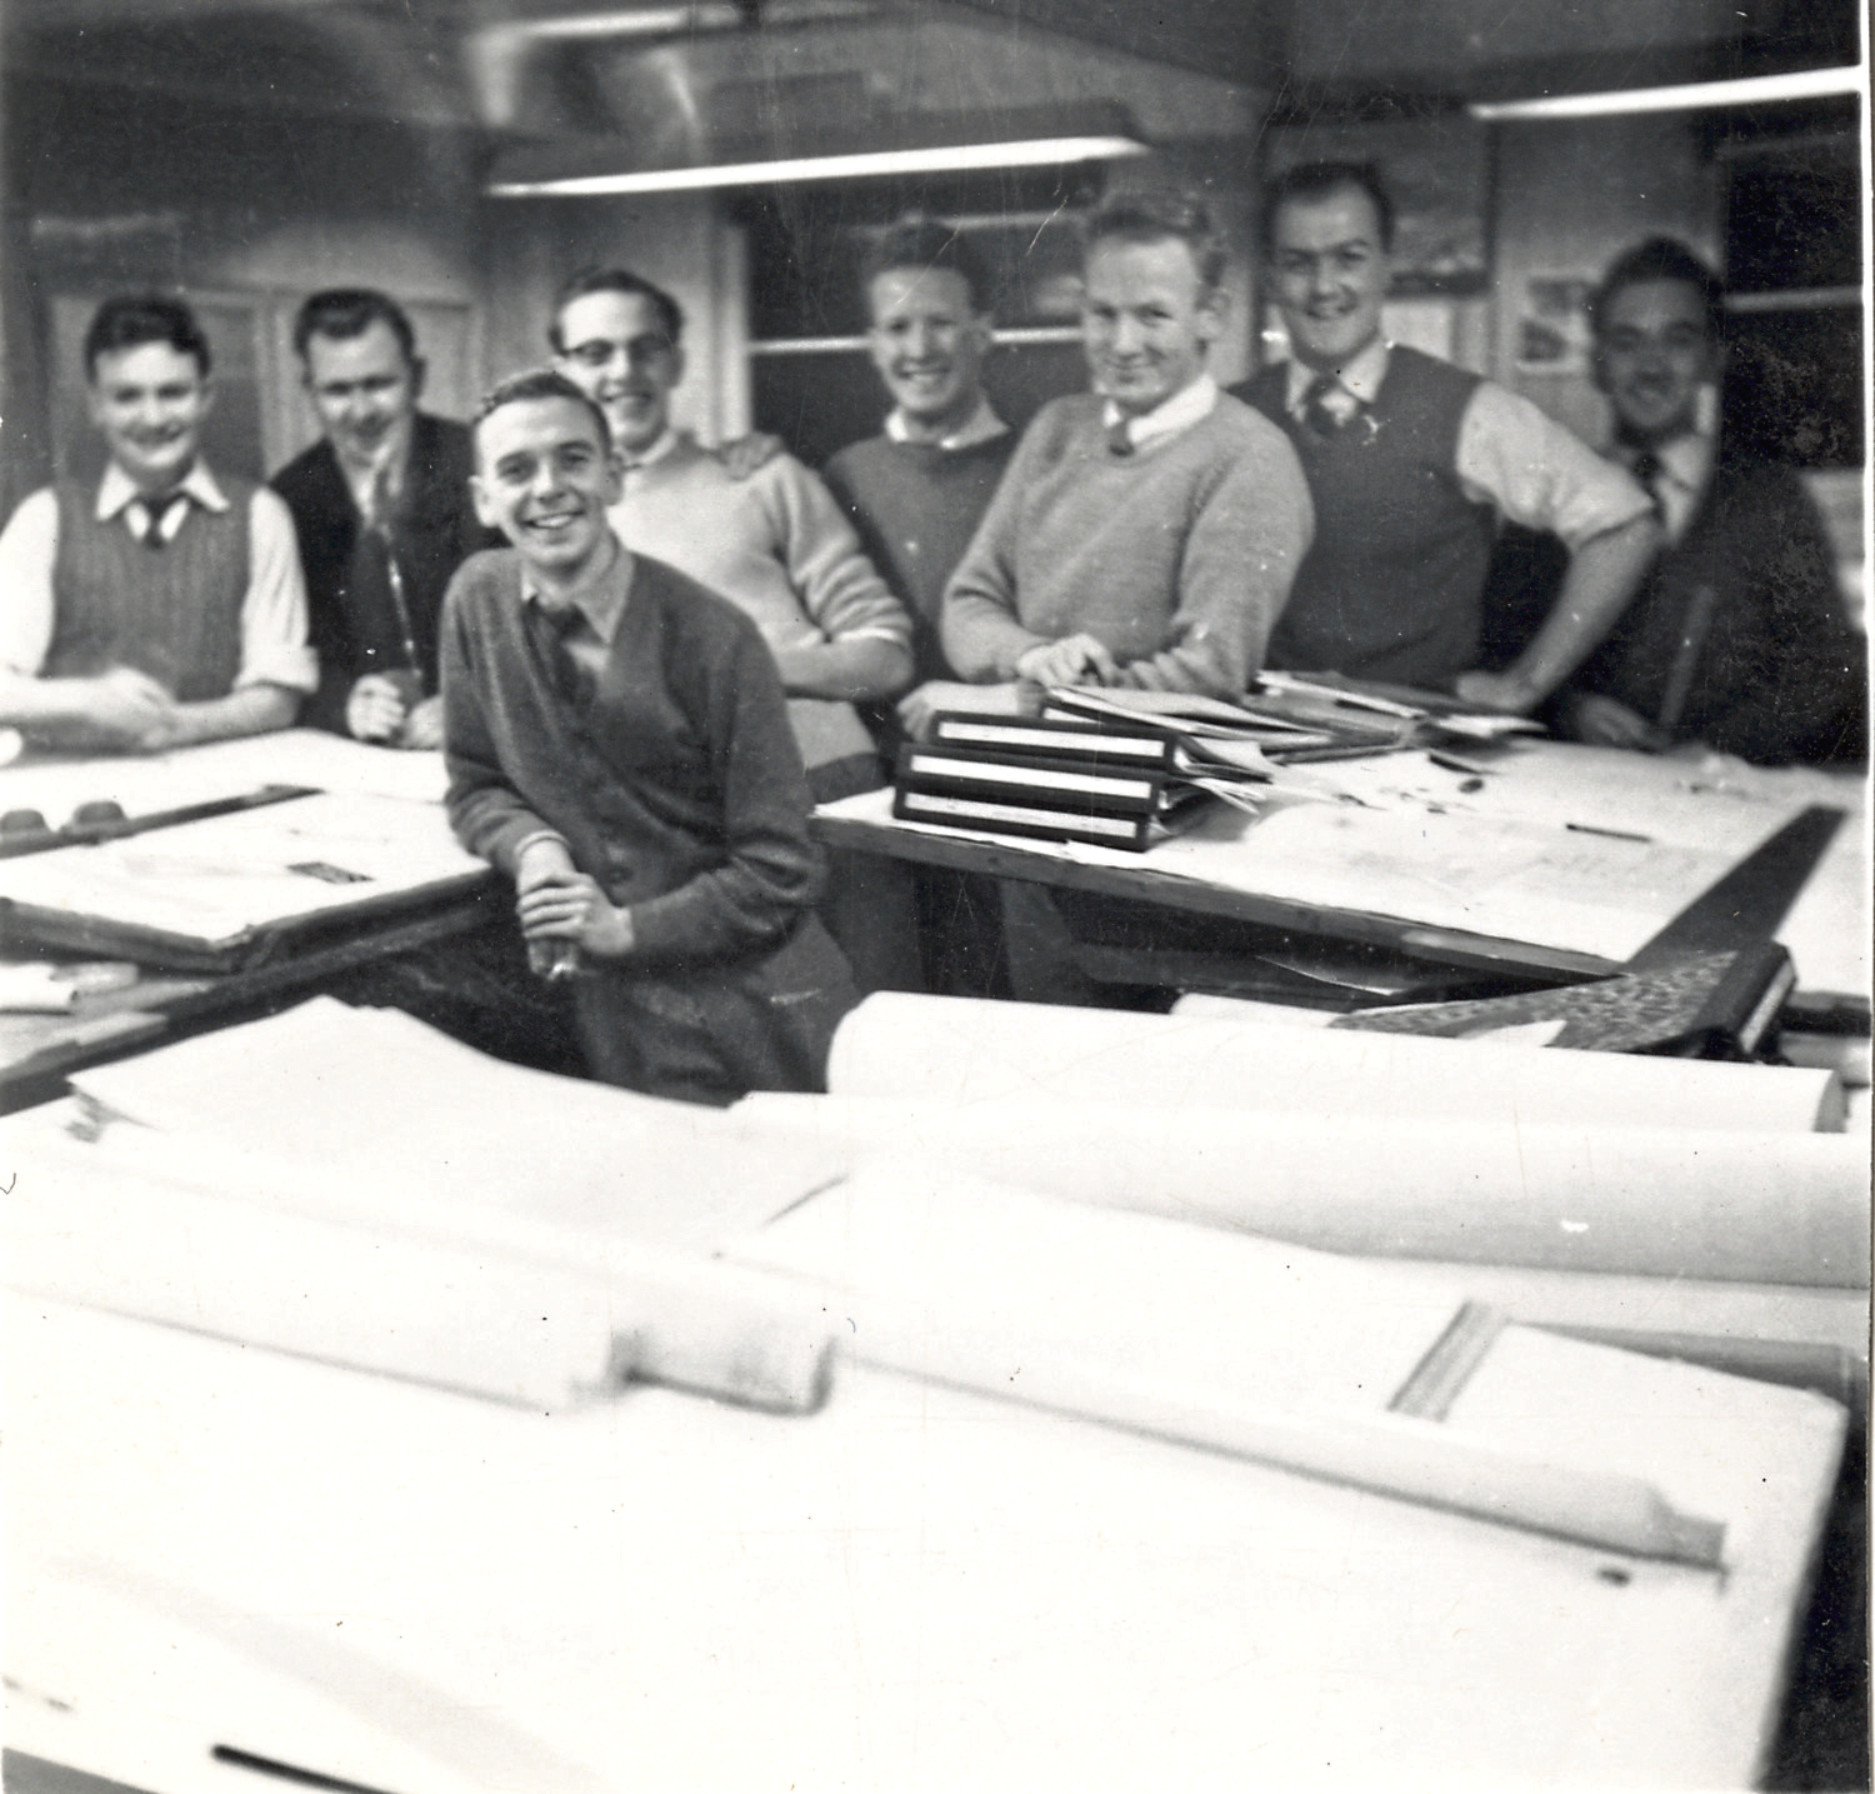 Staff at the John Lewis engineering drawing office in the 1950s